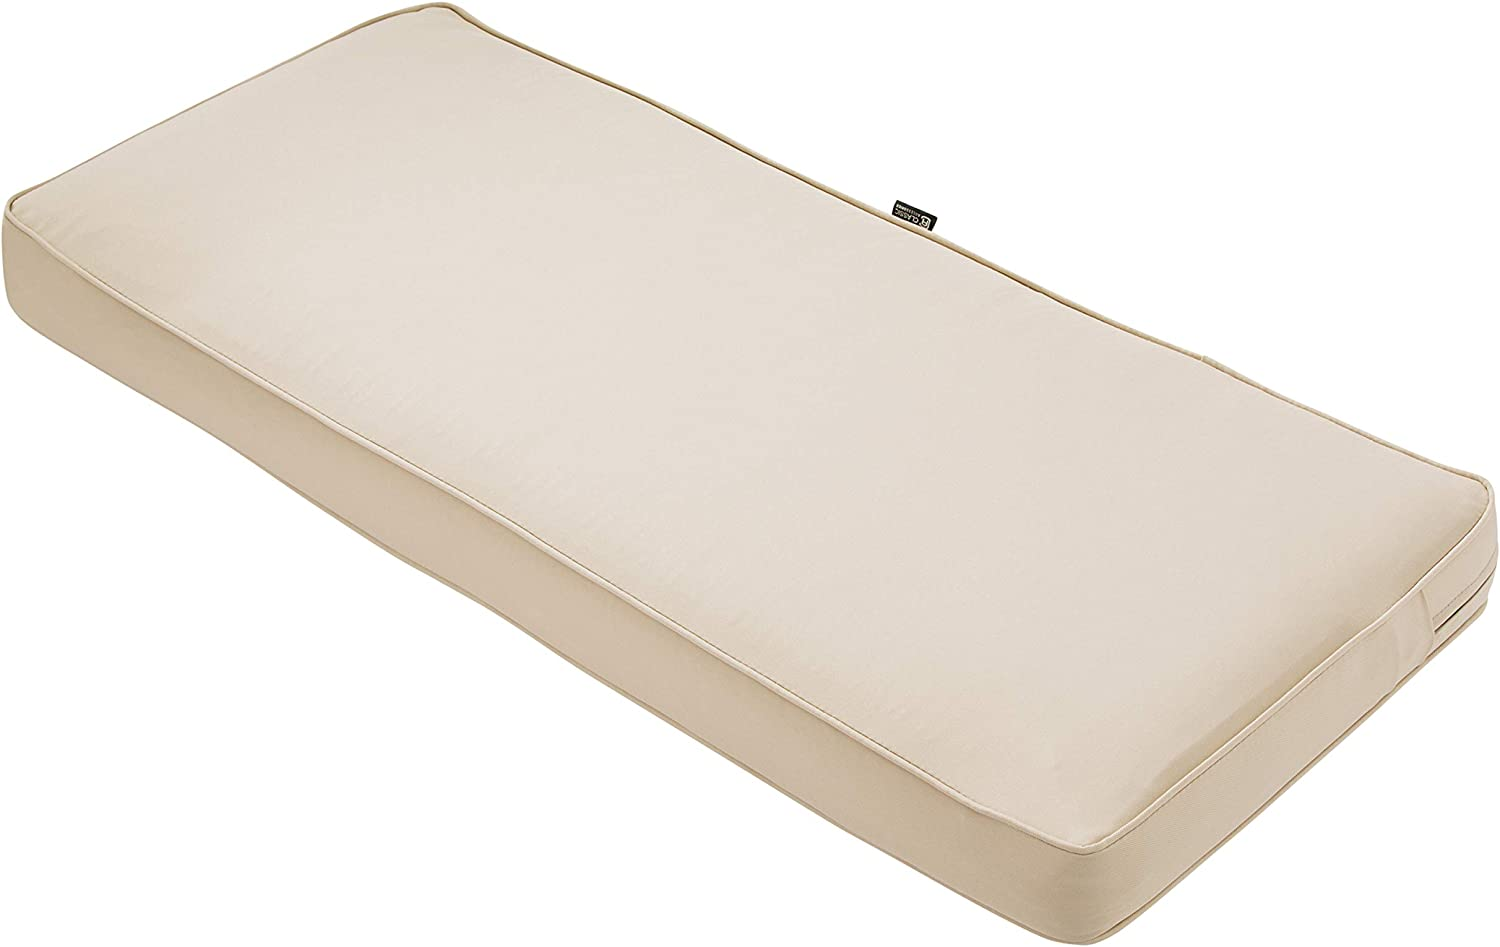 "Classic Accessories Montlake Bench Cushion Foam & Slip Cover, Antique Beige, 48x18x3"" Thick"